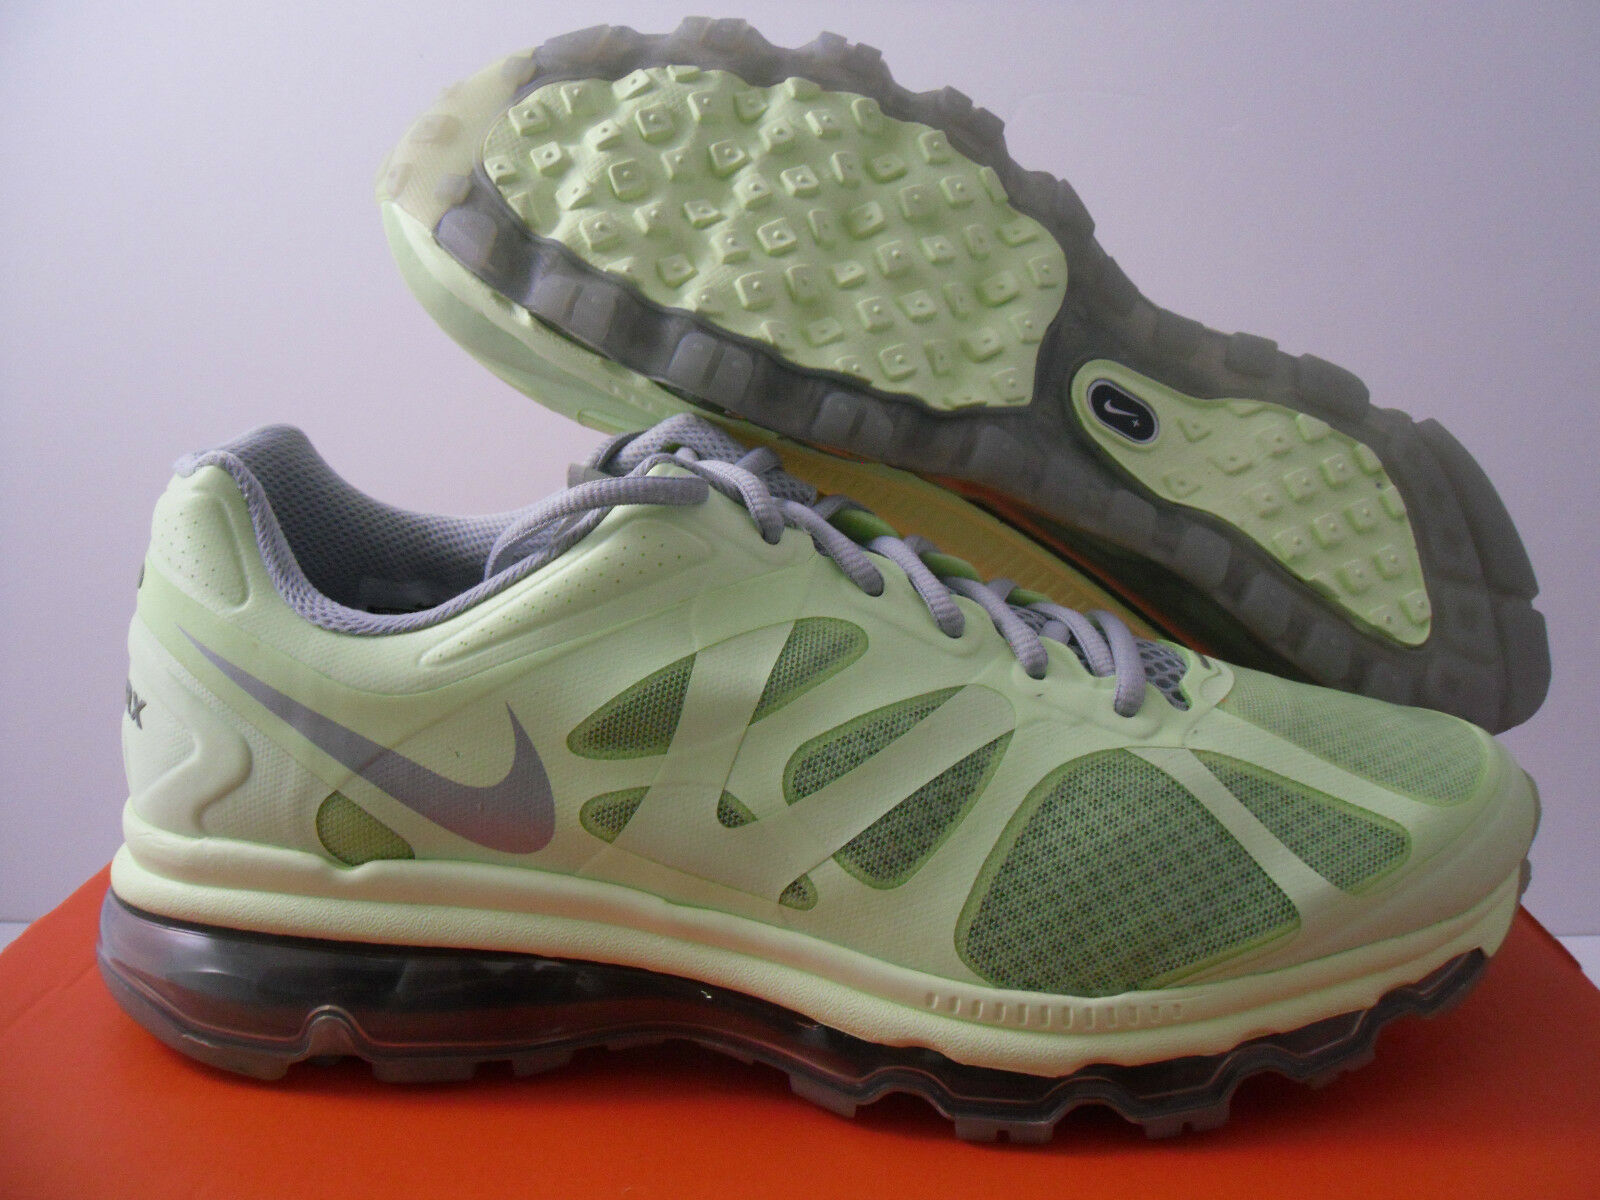 WMNS NIKE AIR MAX + 2012 BARELY VOLT SZ 10 [487679-700]